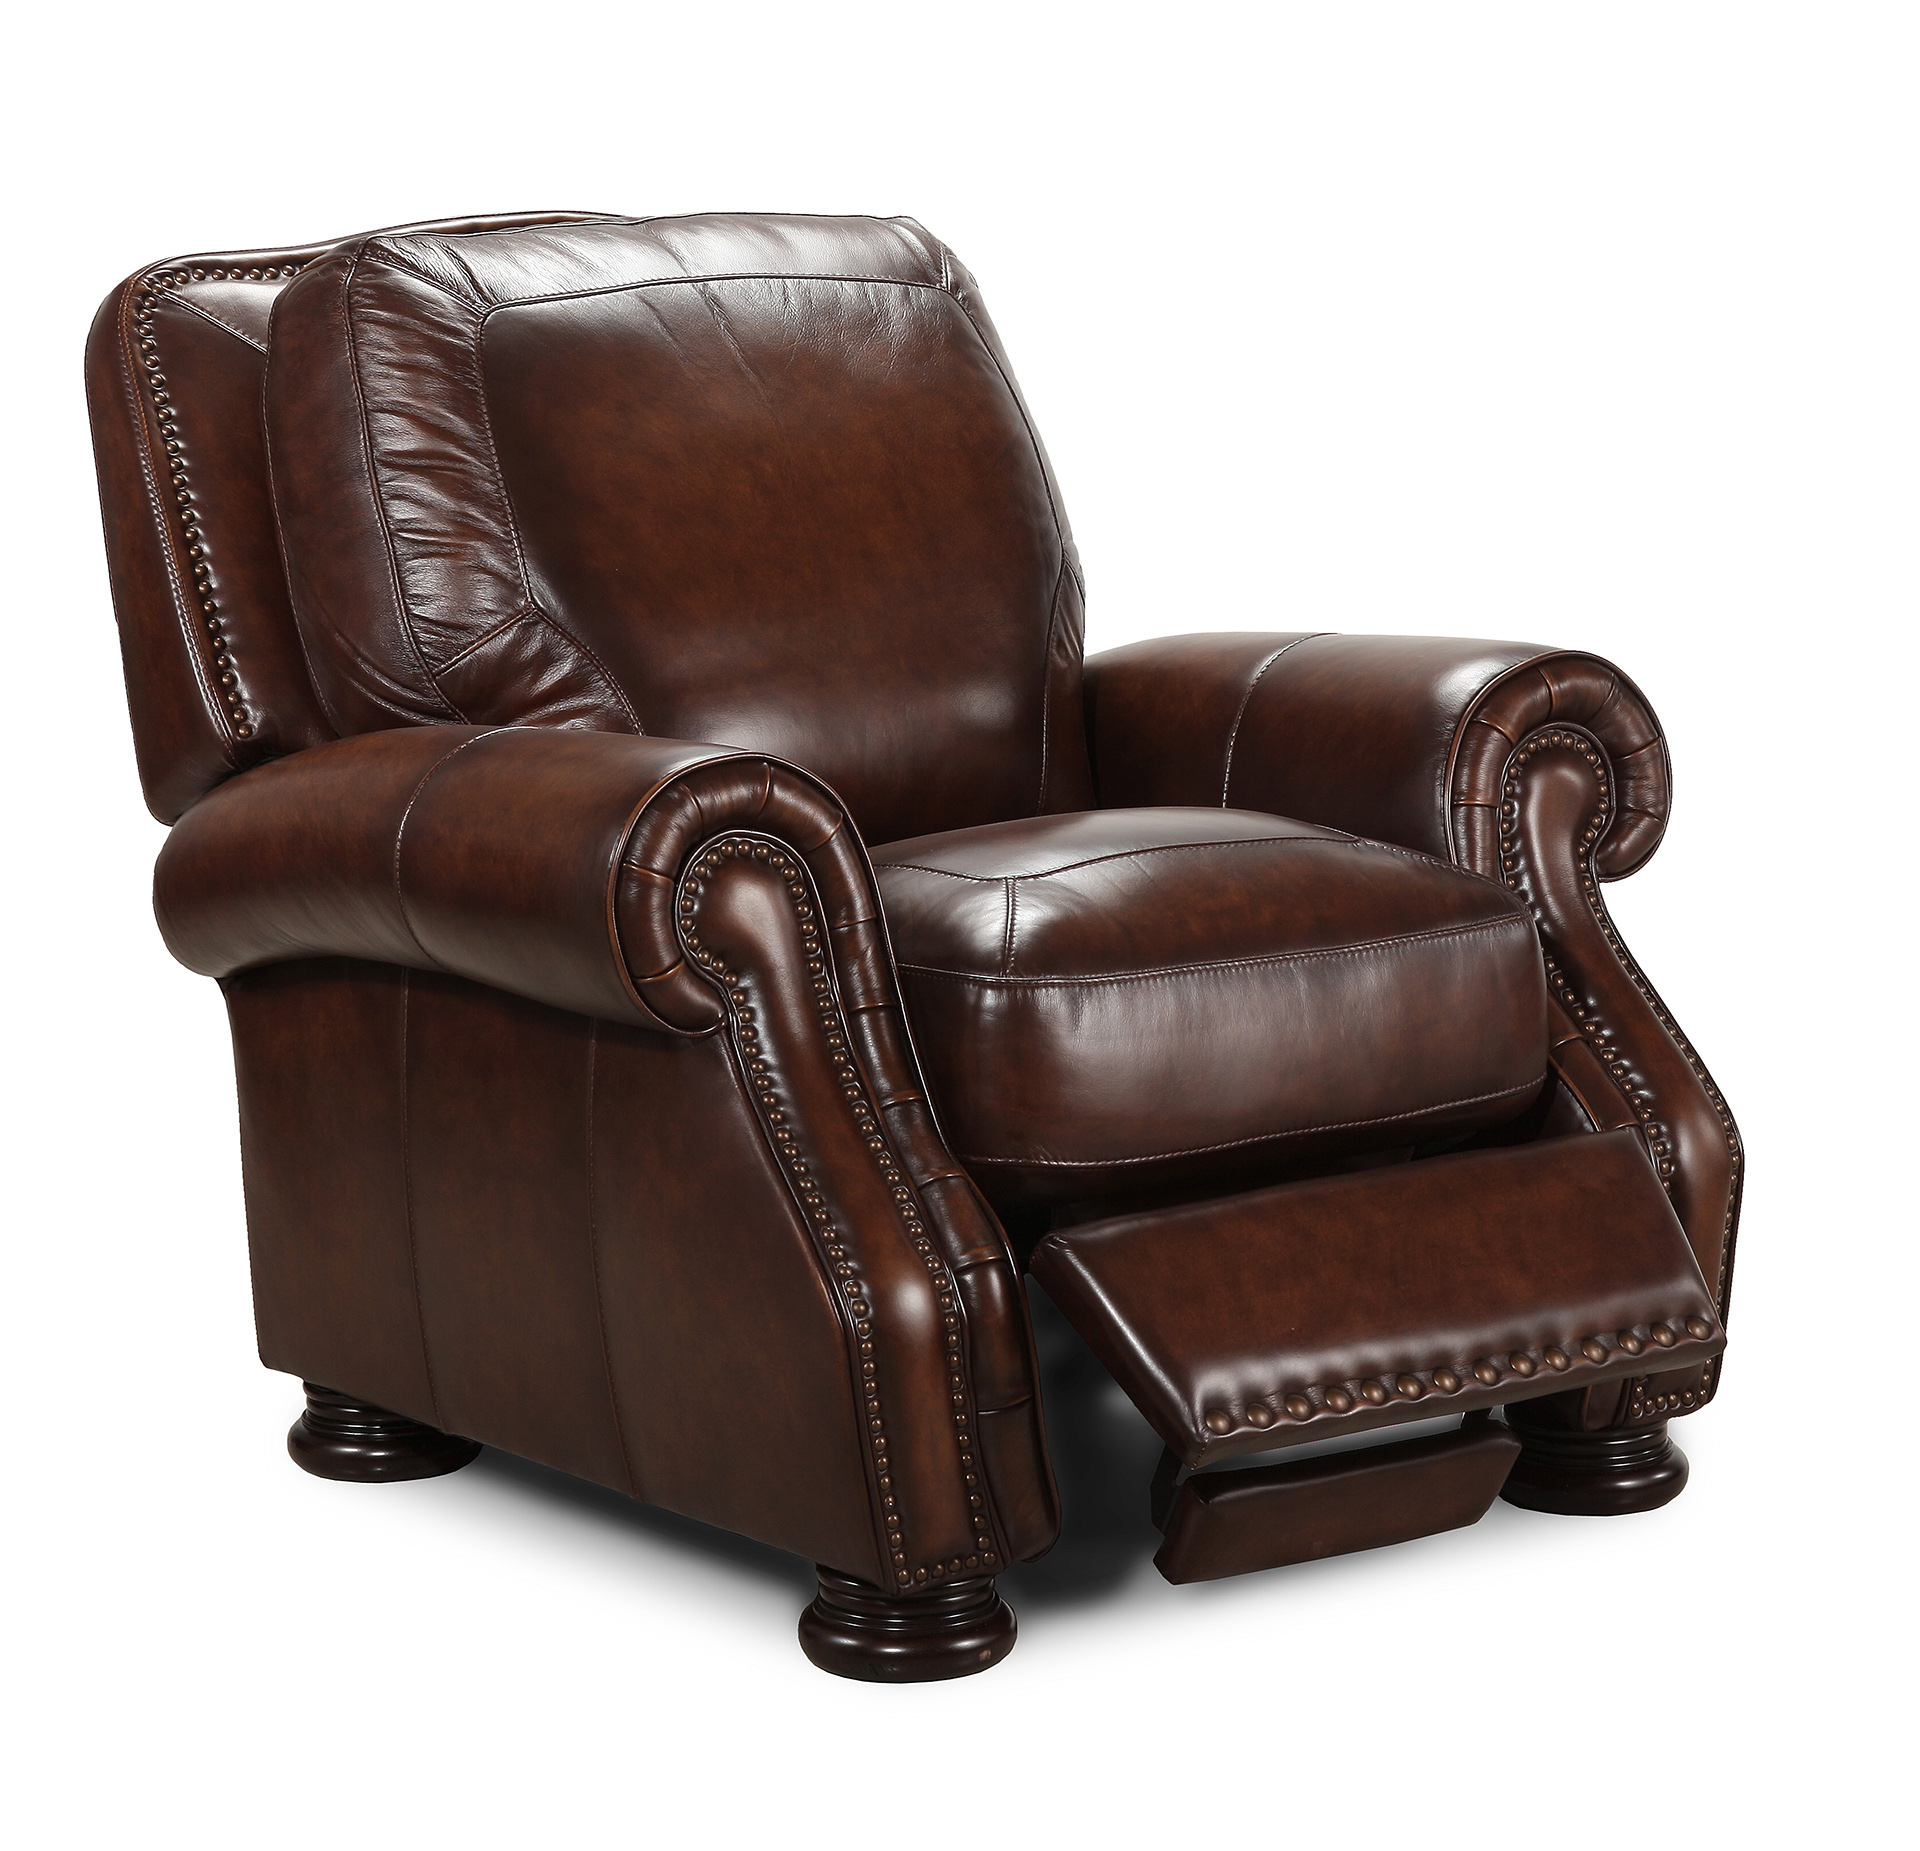 Manwah Leather Power Reclining Sofa Costco